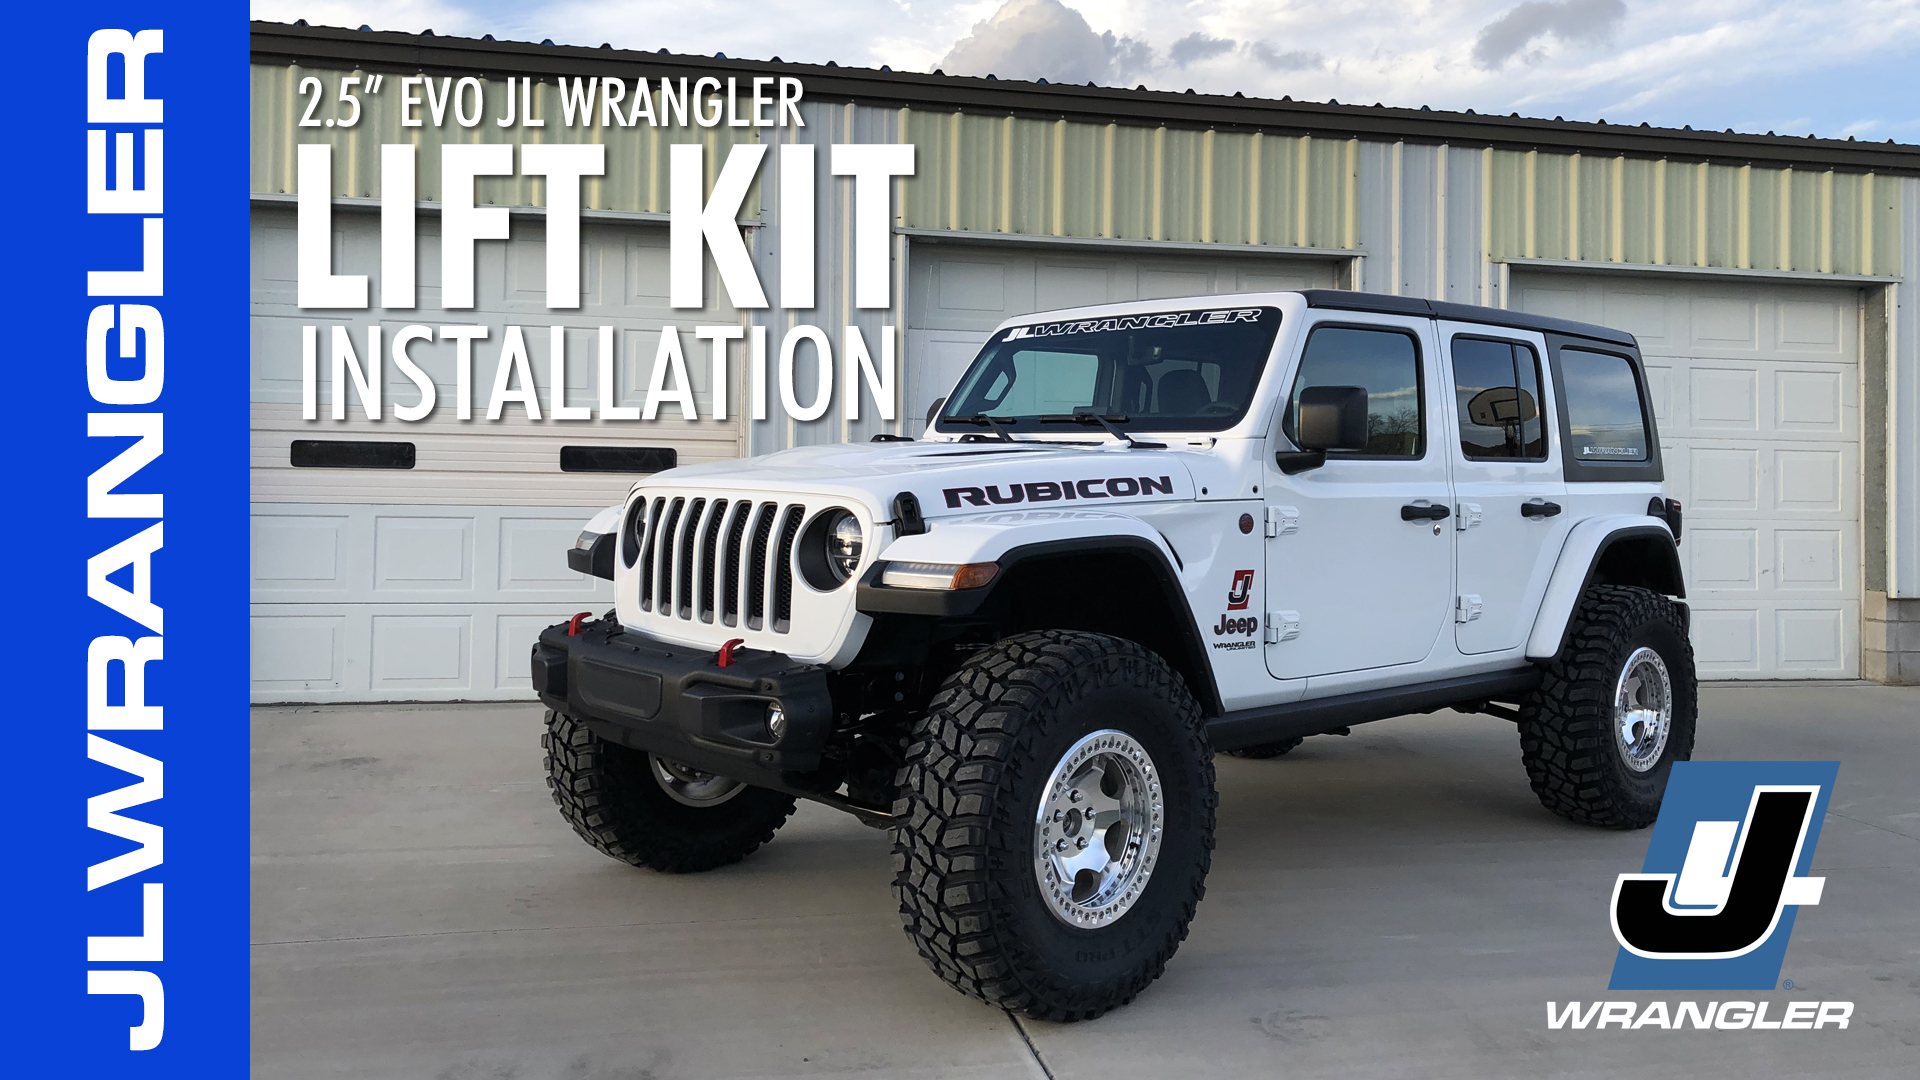 unlimited pro wrangler kit product agility customs tj lcg lift fnnt inch jeep flexarm kits teraflex long